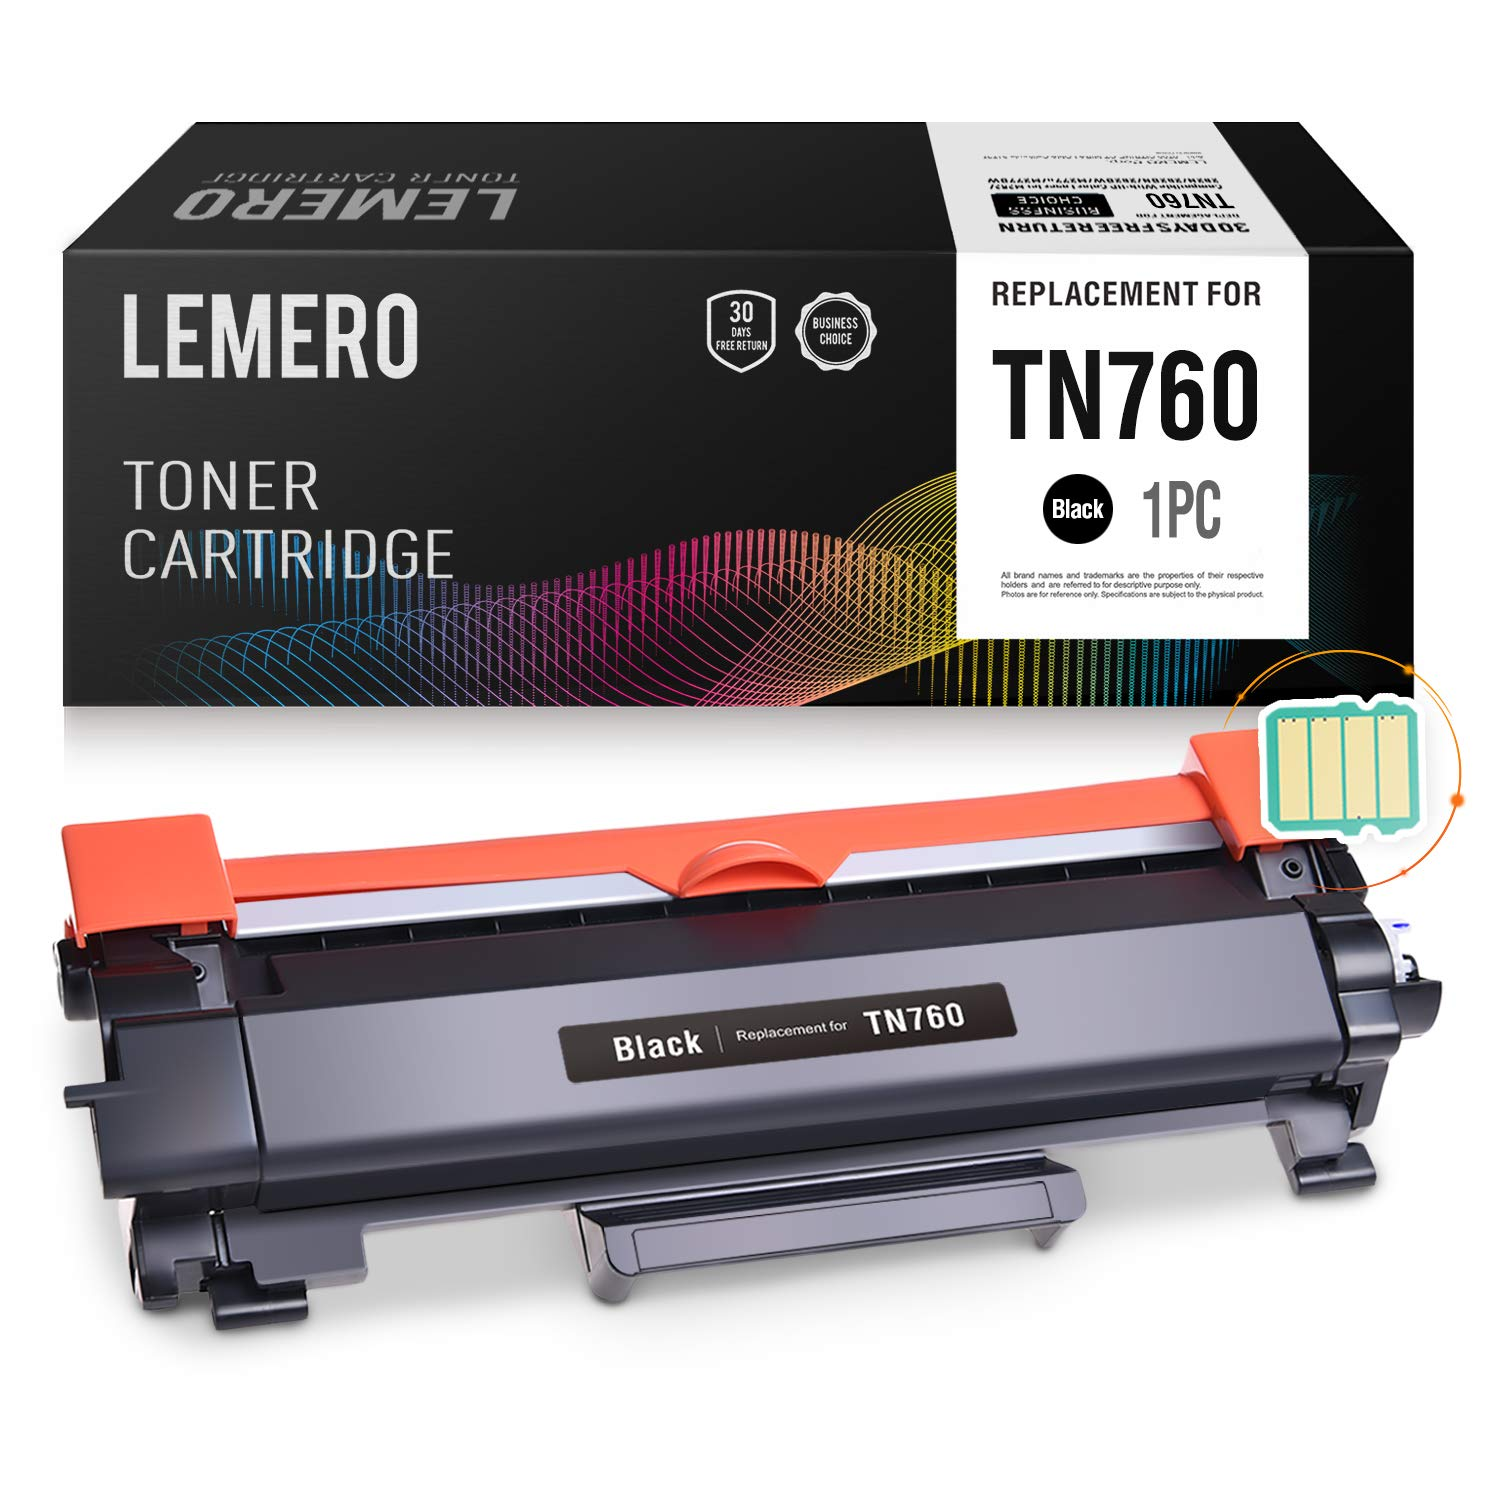 LEMERO (with IC CHIP) Compatible Brother TN760 TN730 High Yield Black Toner Cartridge - for Brother HL-L2350DW HL-L2395DW DCP-L2550DW MFC-L2710DW MFC-L2750DW by Lemero (Image #1)